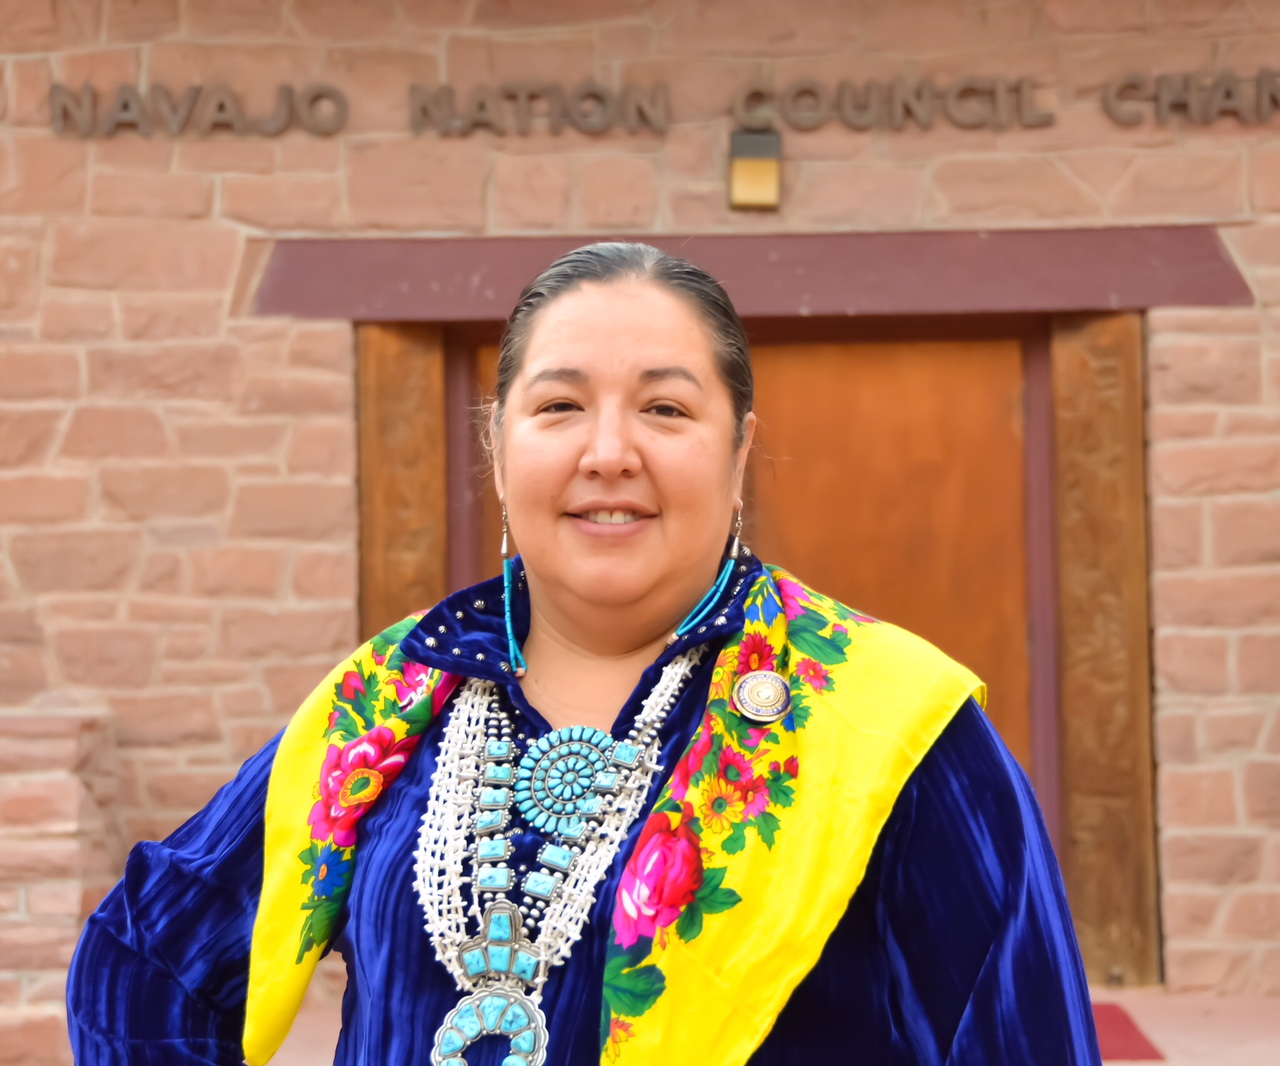 lutheran indian ministries native news - Navajo Nation Council Delegate Amber Kanazbah Crotty